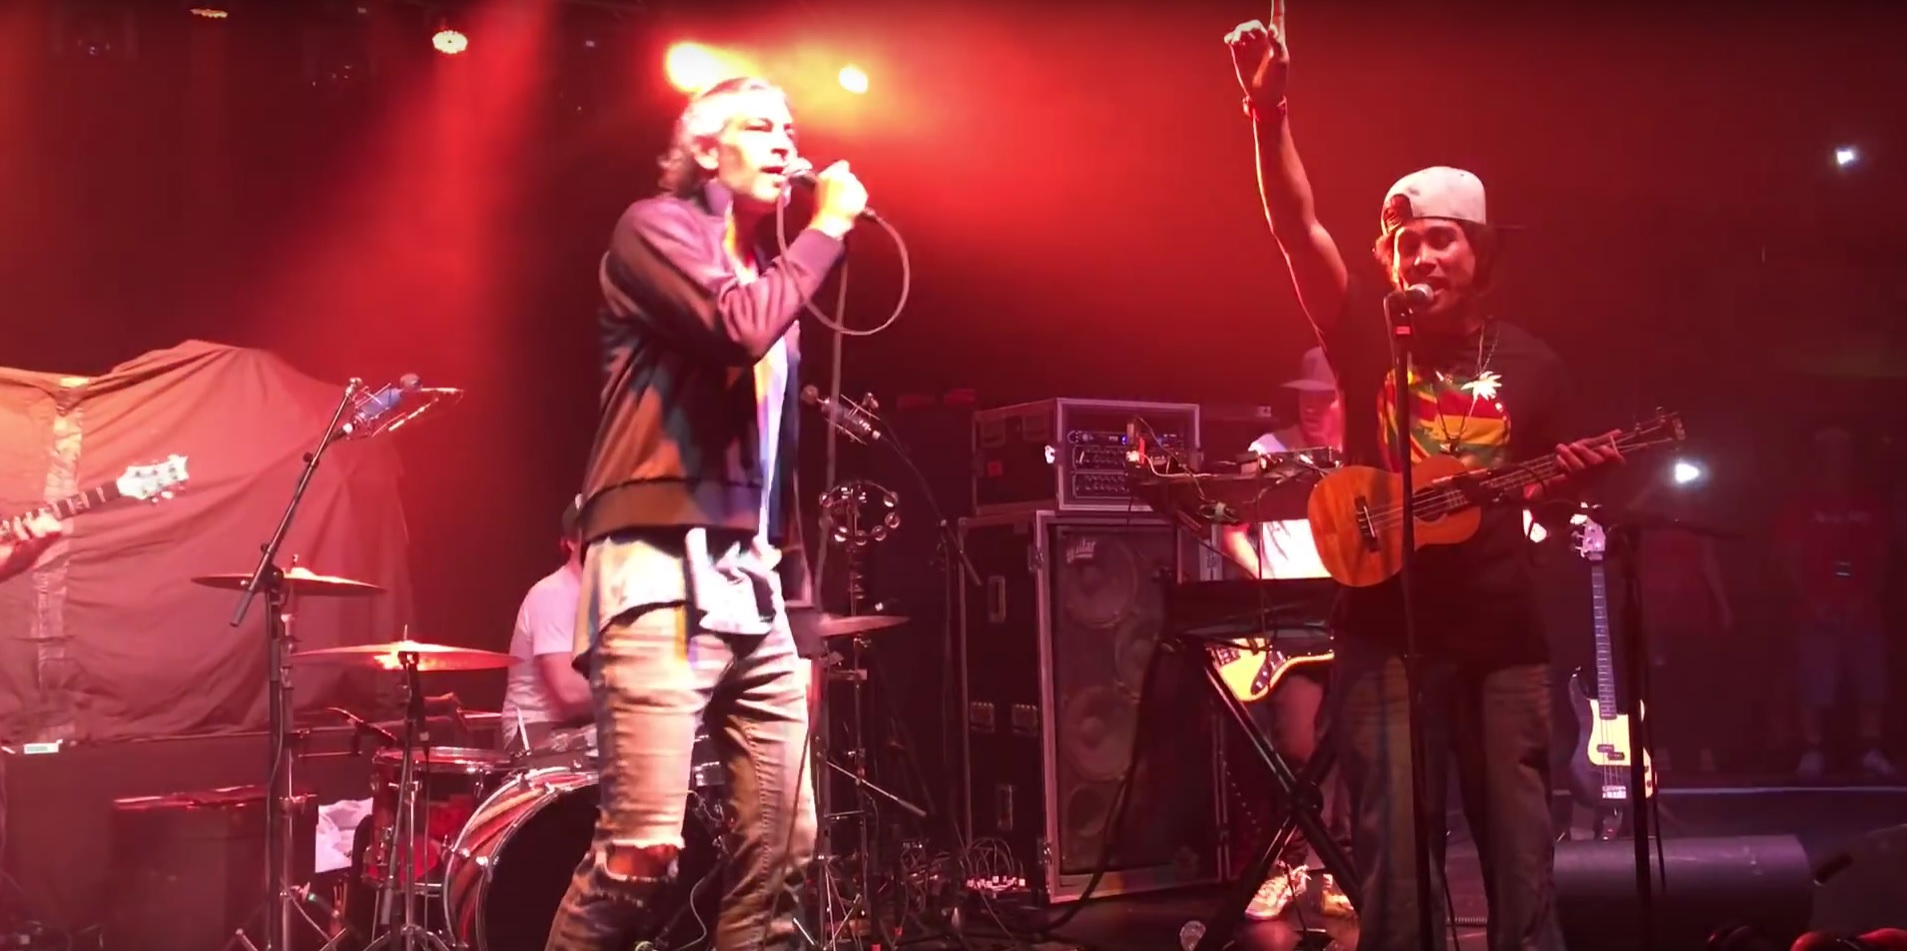 Matisyahu Surprises Ukulele Player with Sing-A-Long and